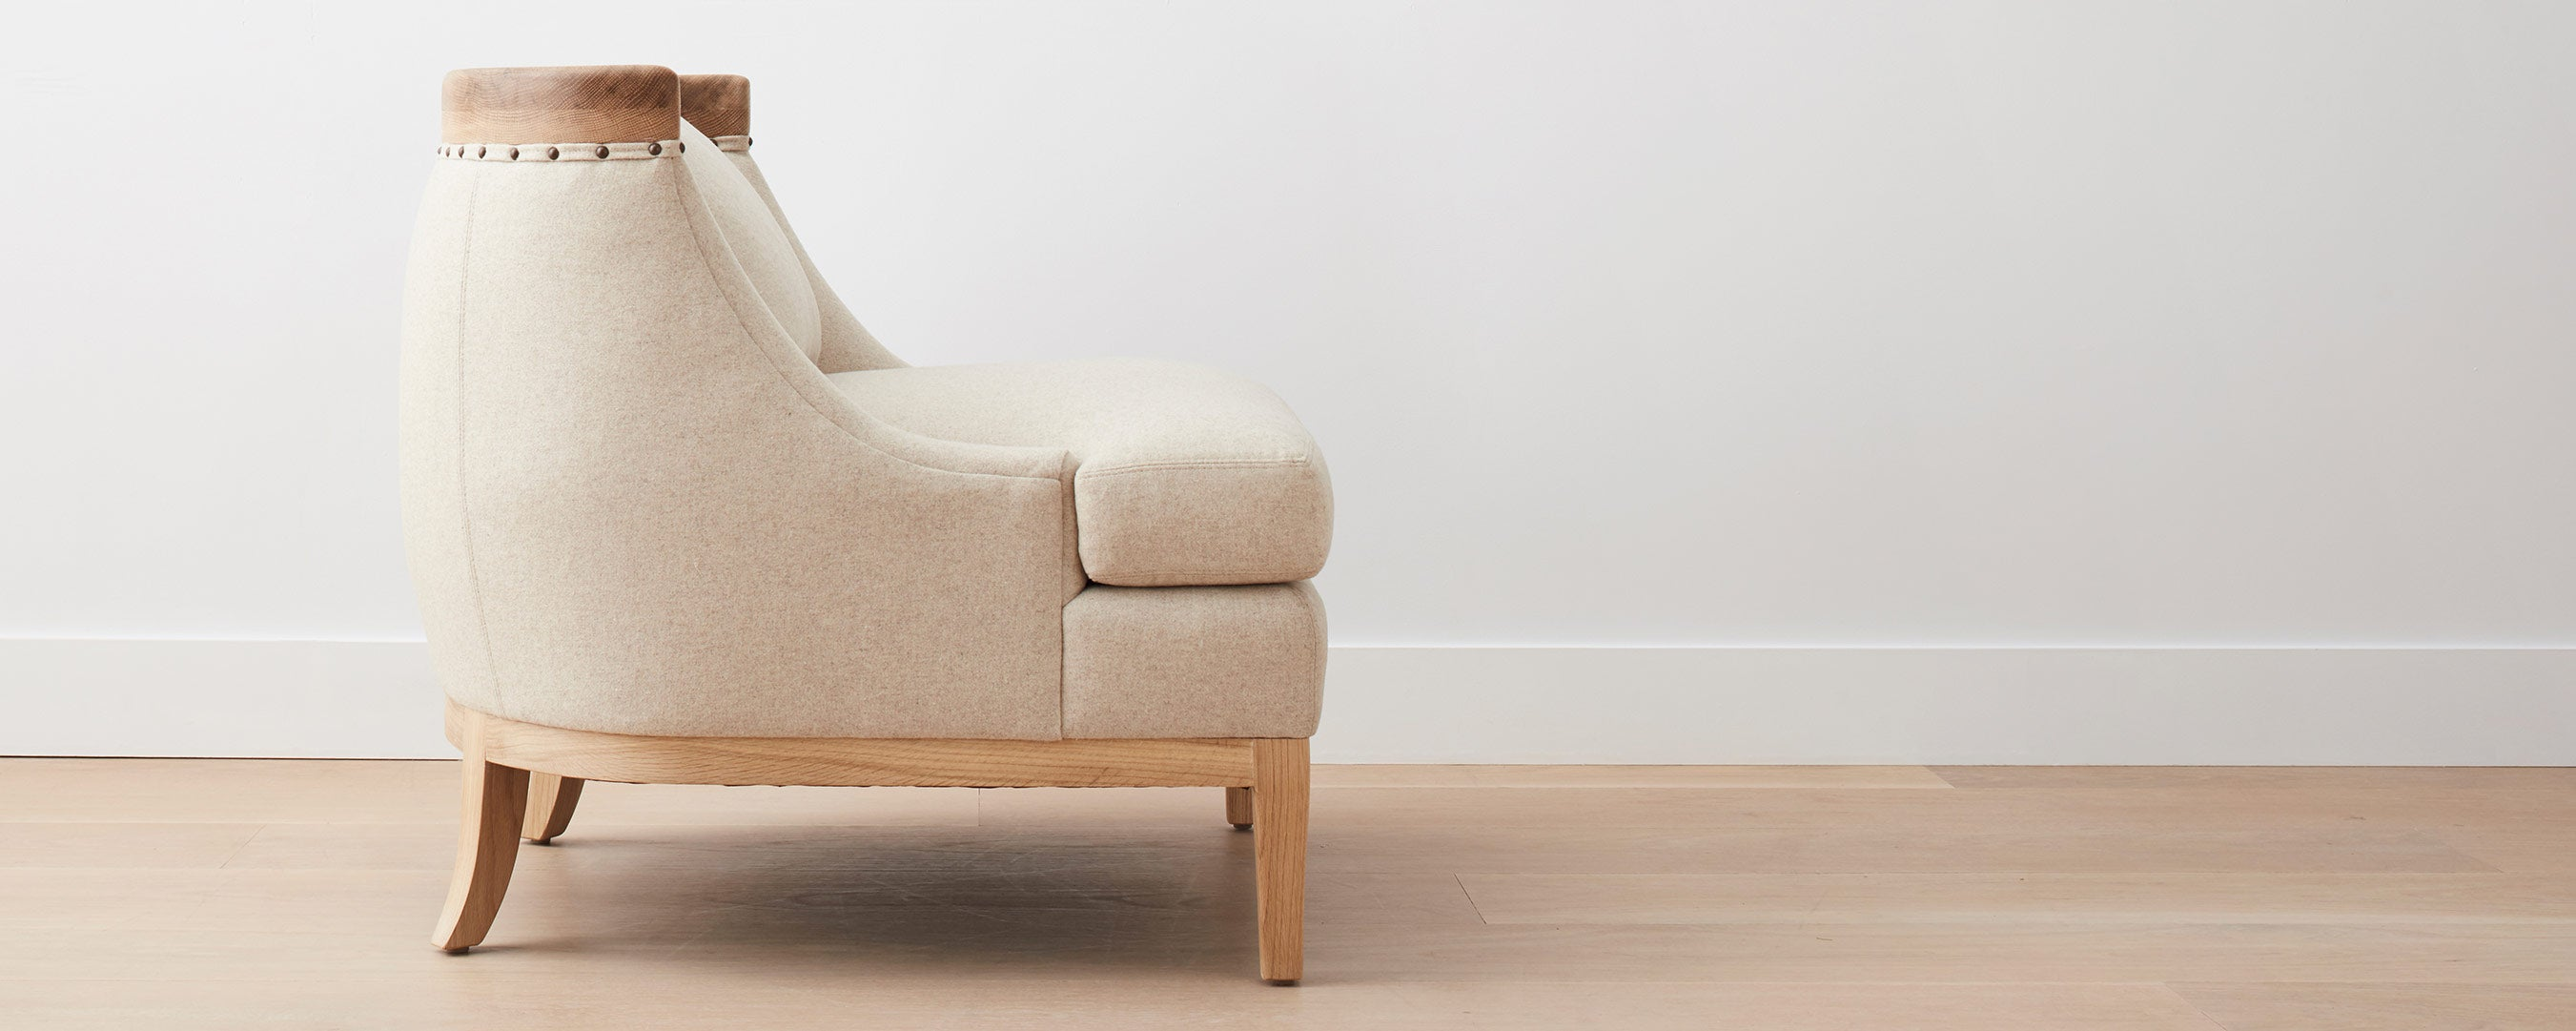 the homenature mulholland chair